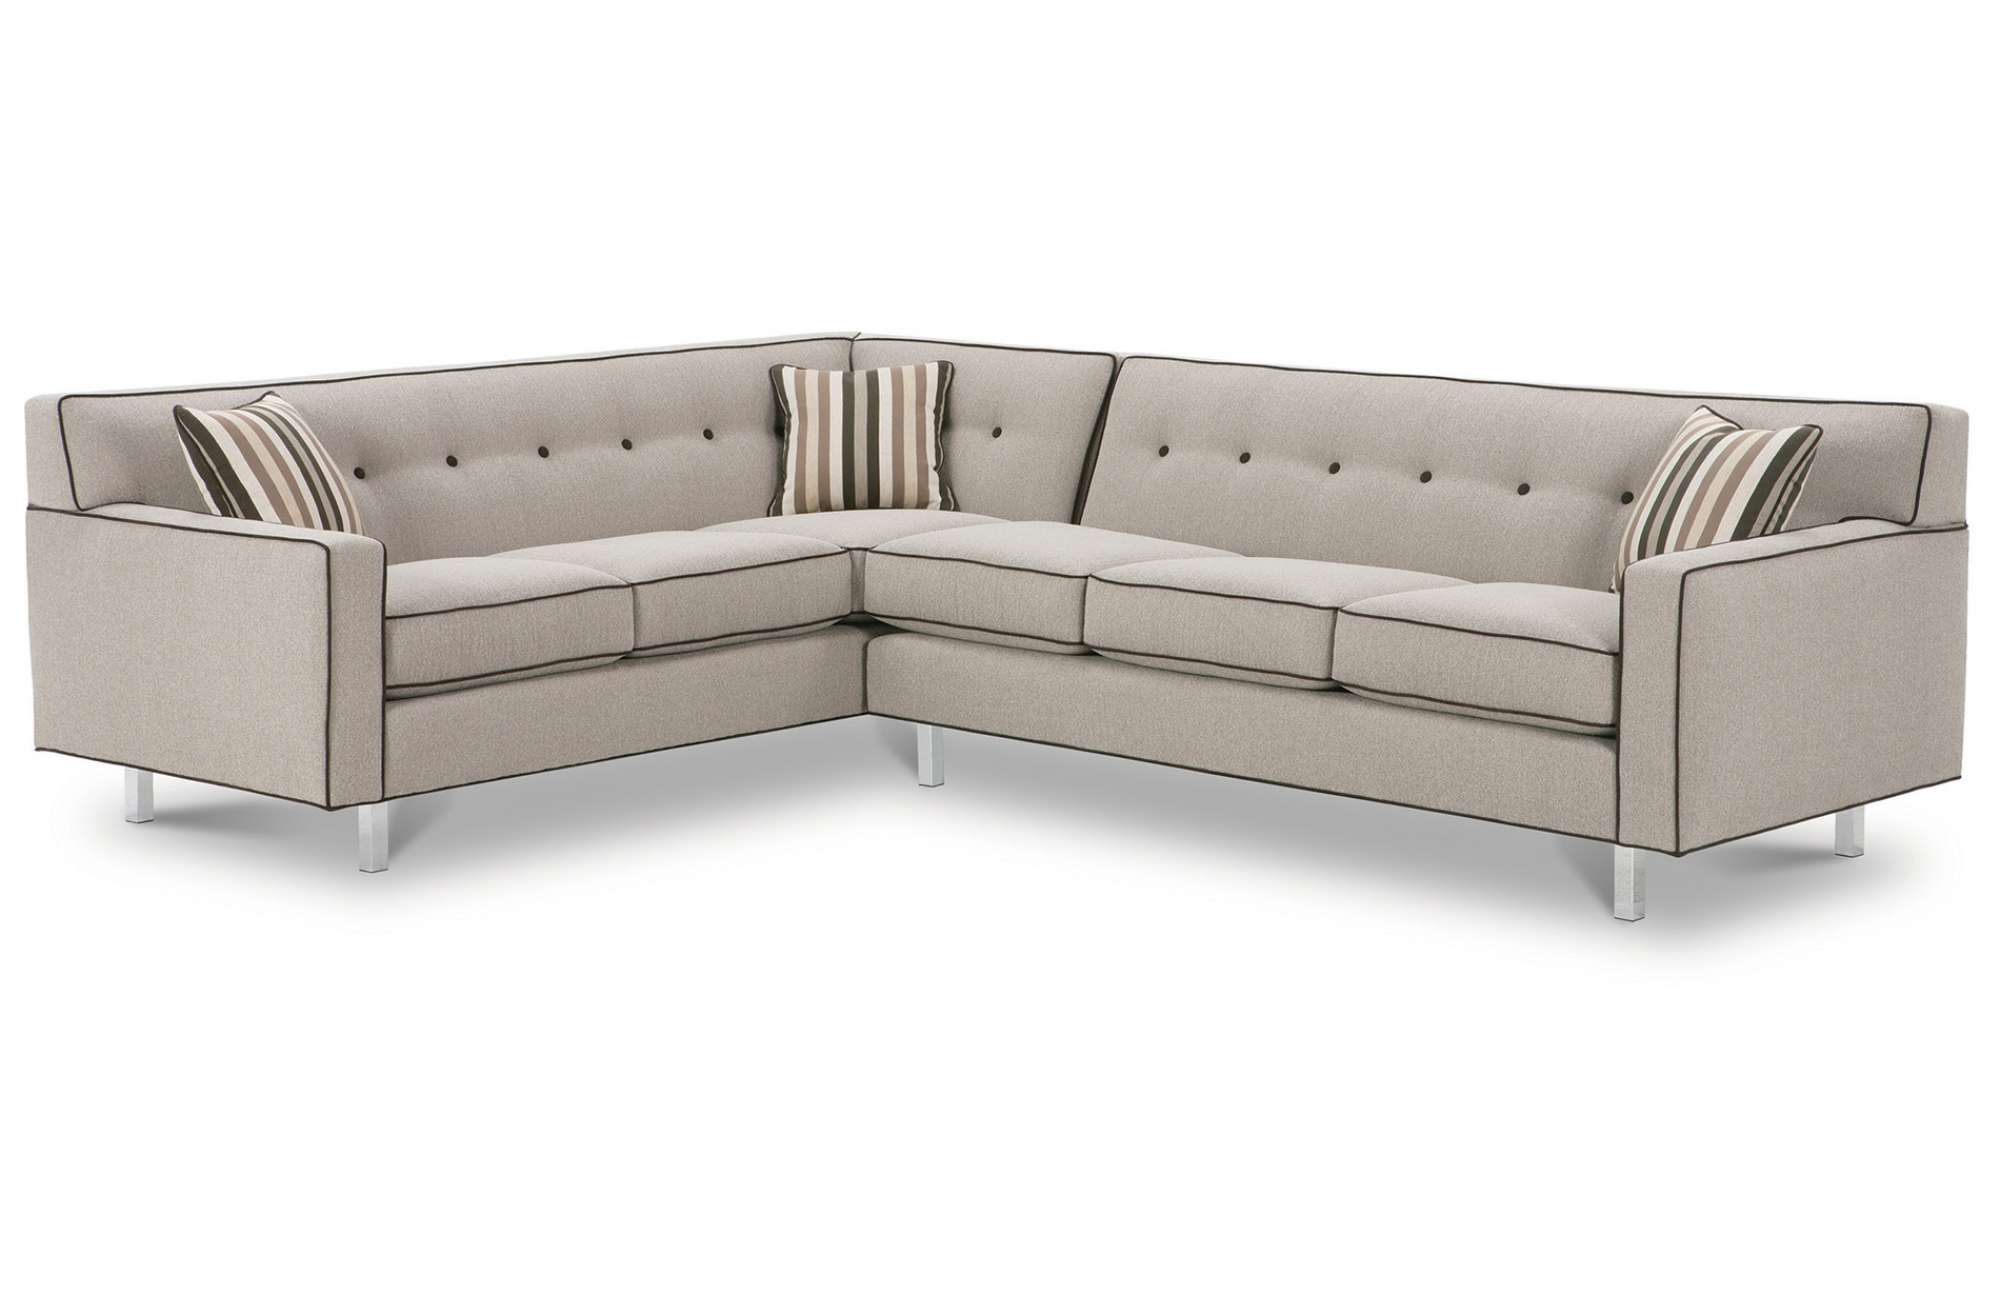 Attrayant Dorset K520C Chrome Leg Sectional   350 Fabrics And Colors. By Rowe